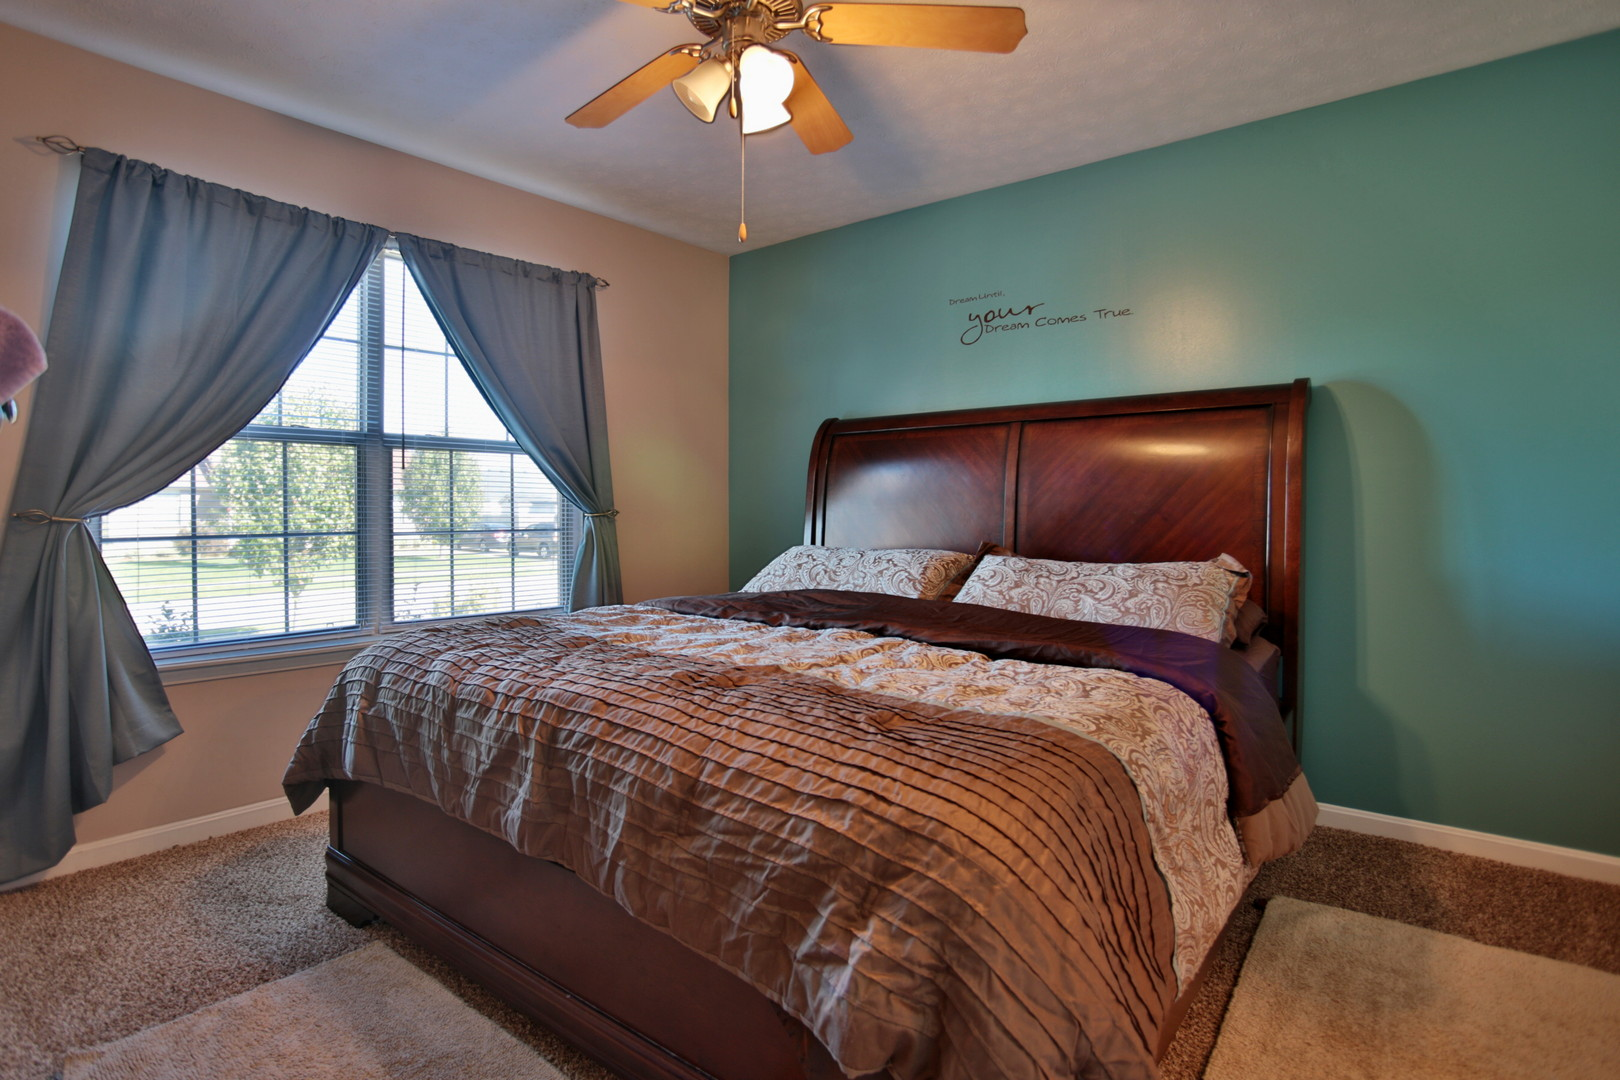 542 Oak Grove Blvd. Shepherdsville, KY 40165 Master Bedroom